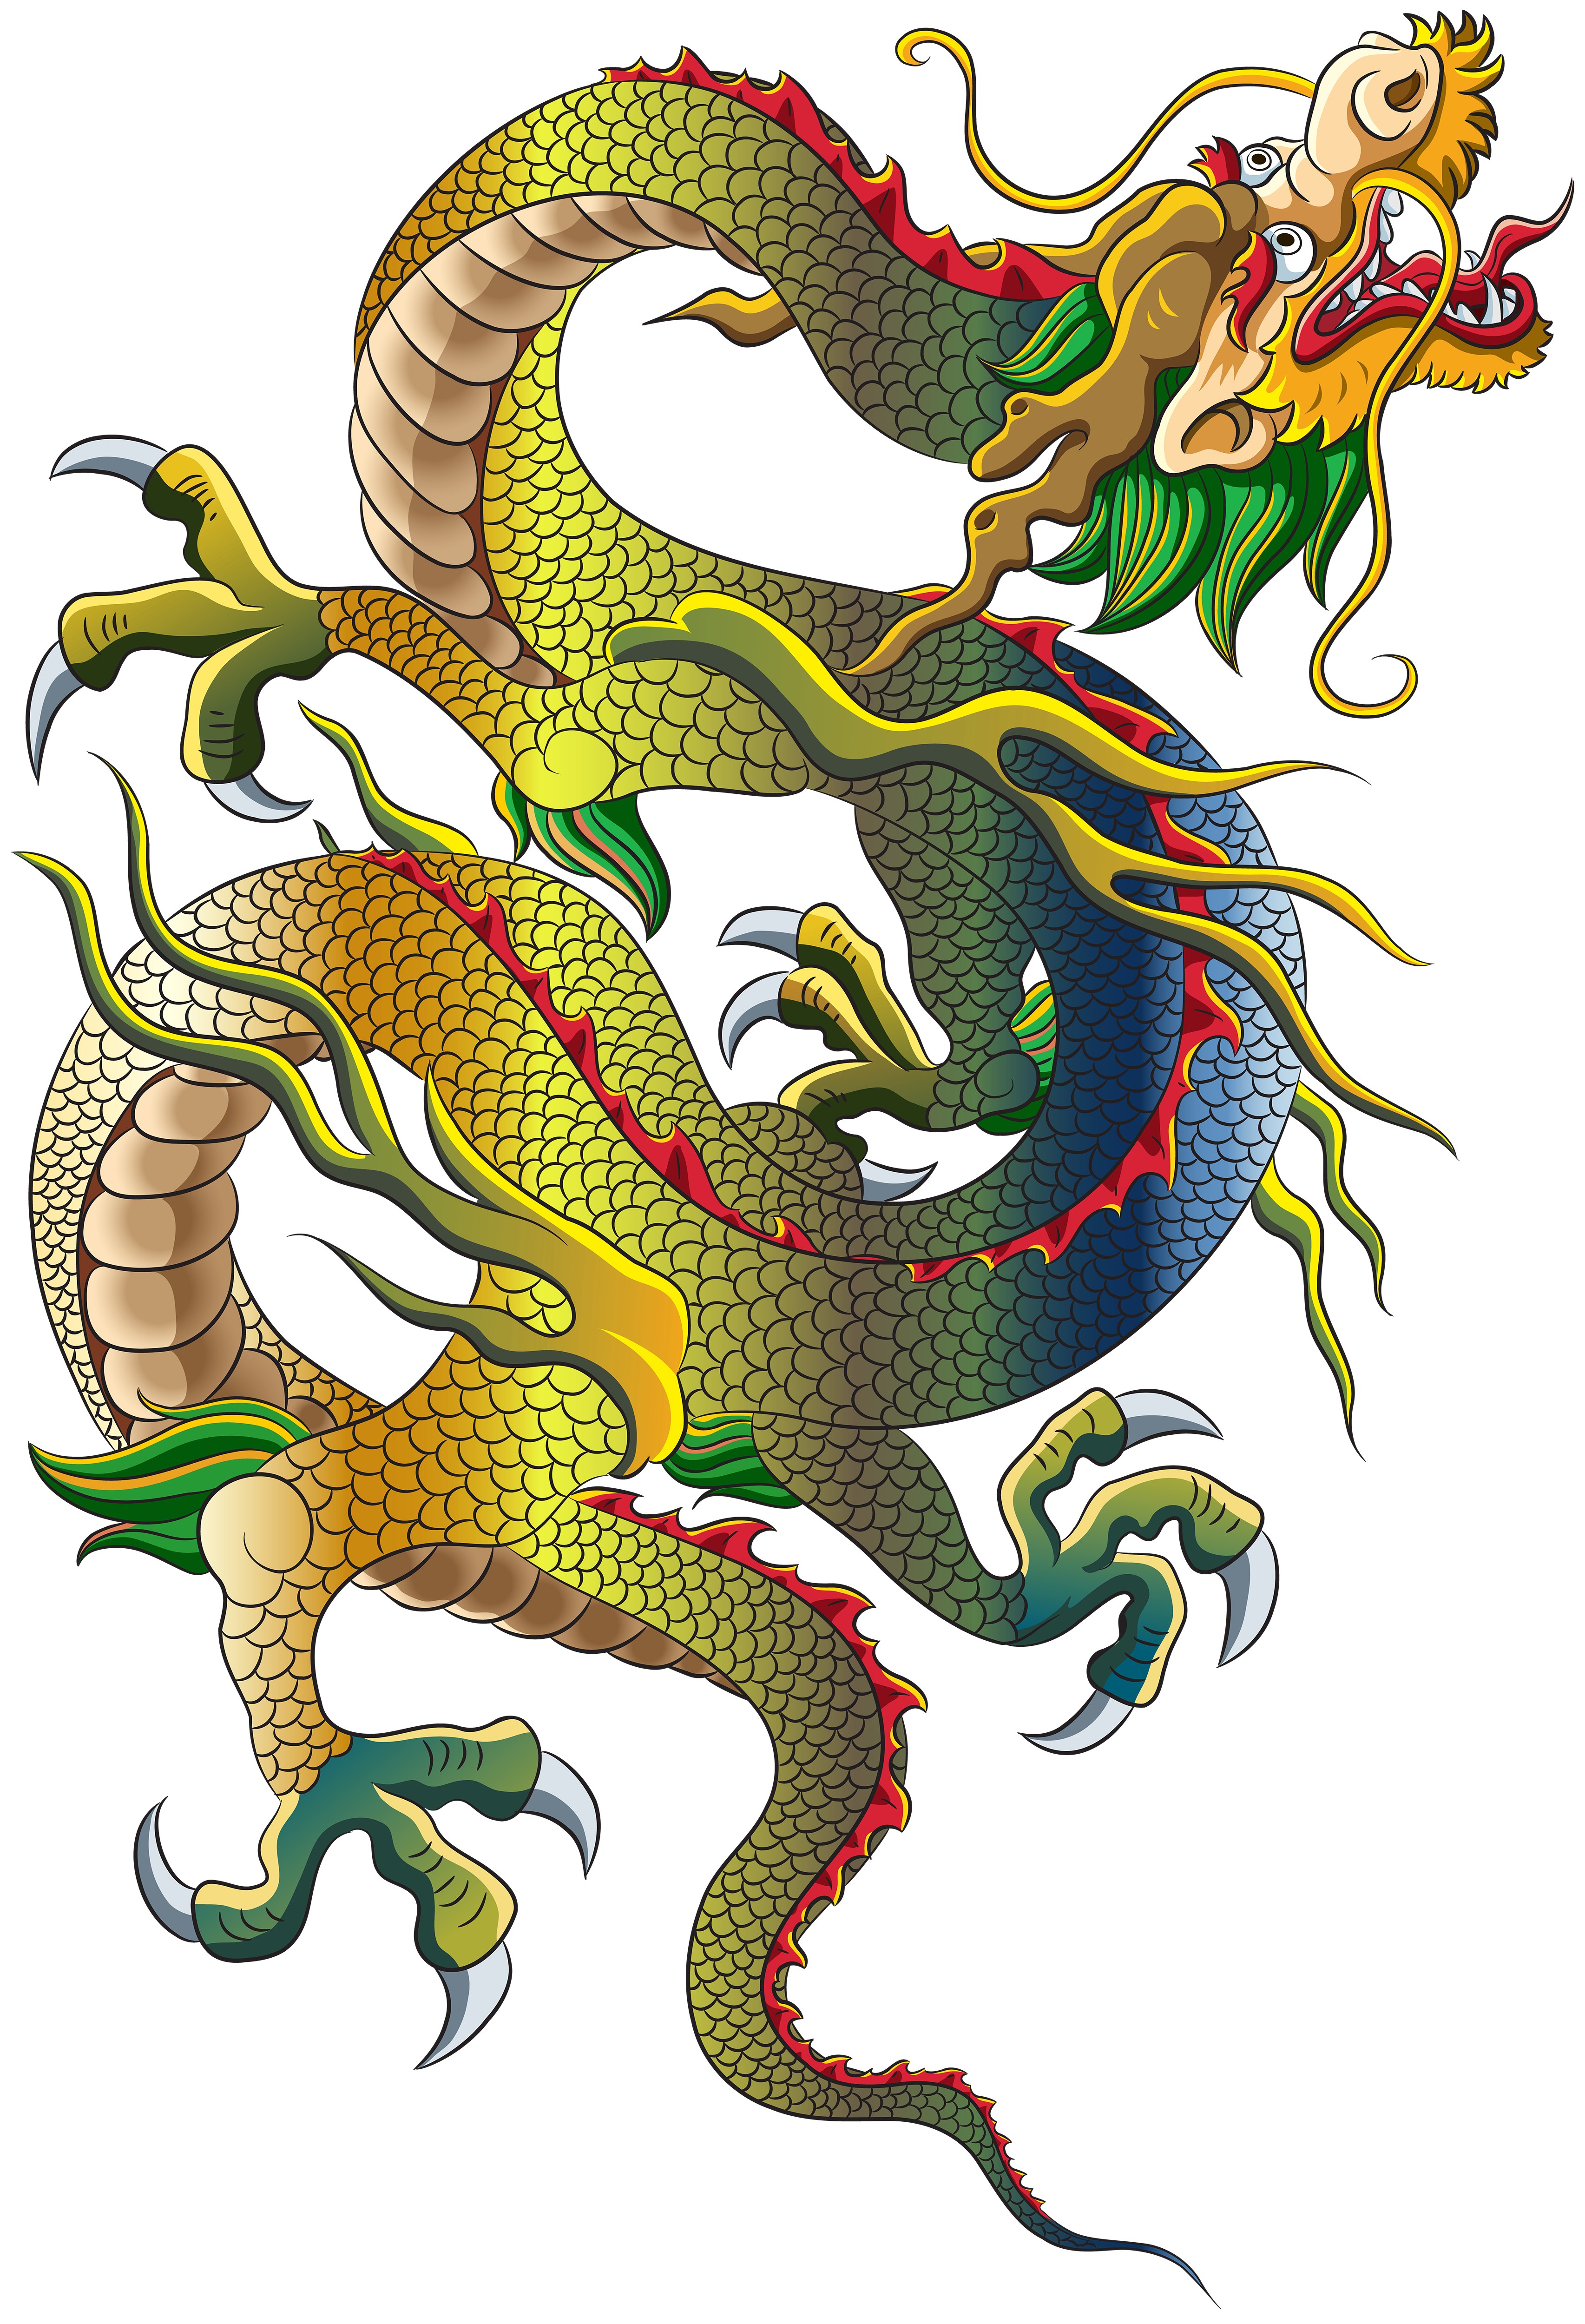 Chinese Art Dragon Snake Clipart, Snake, Footless Reptile, Hissing Sound, Venomous 27382